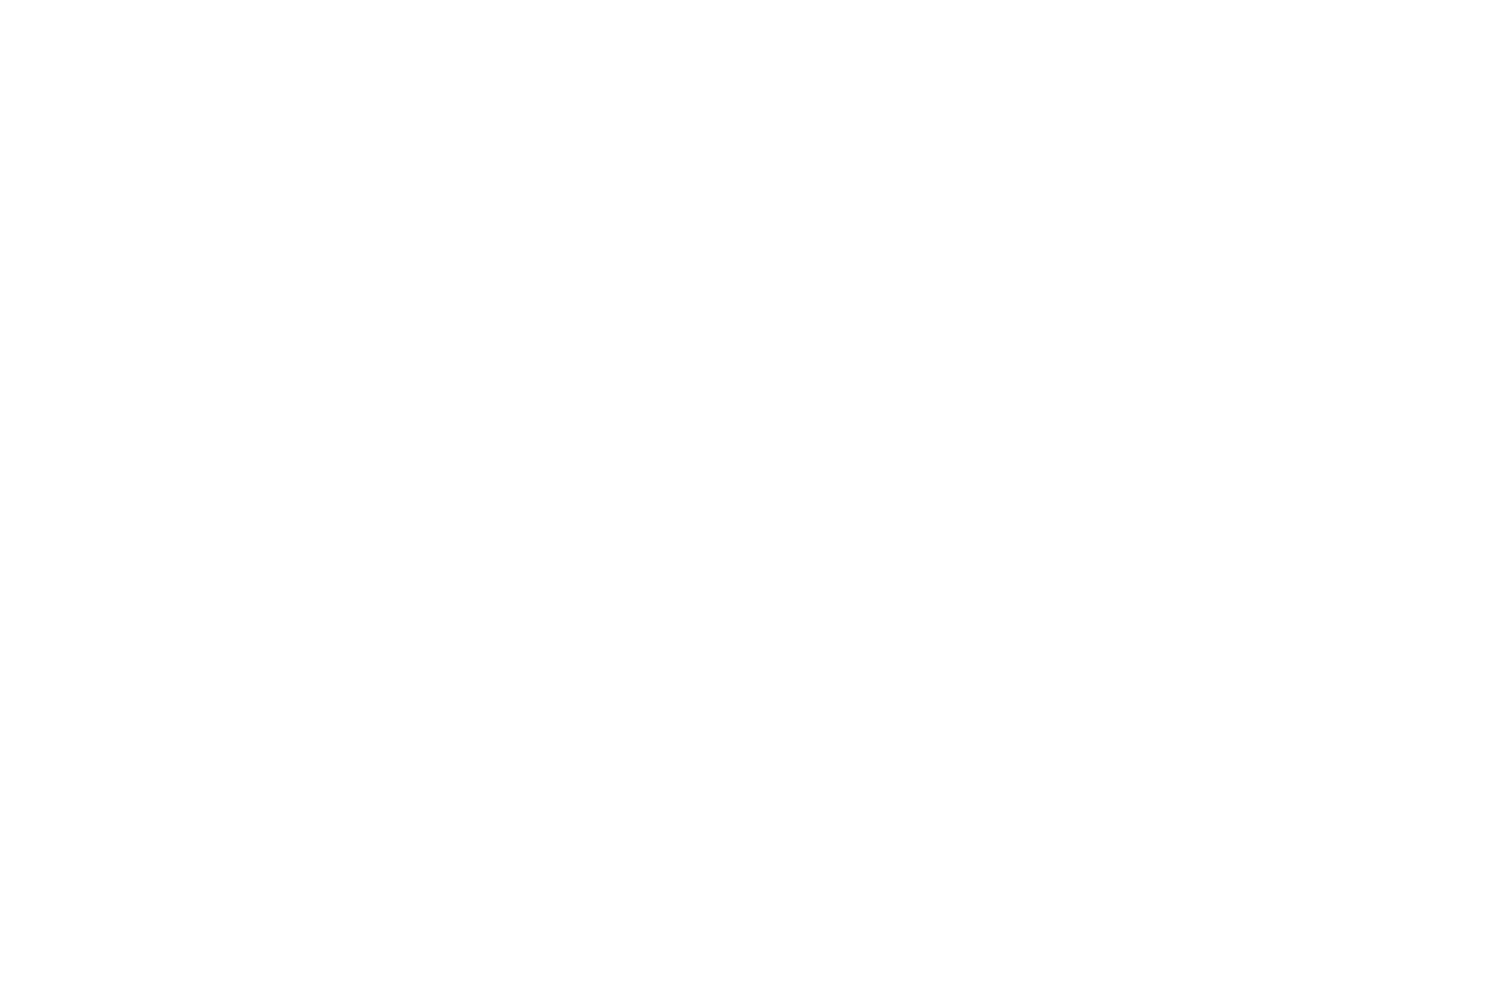 Five Elements Feng Shui